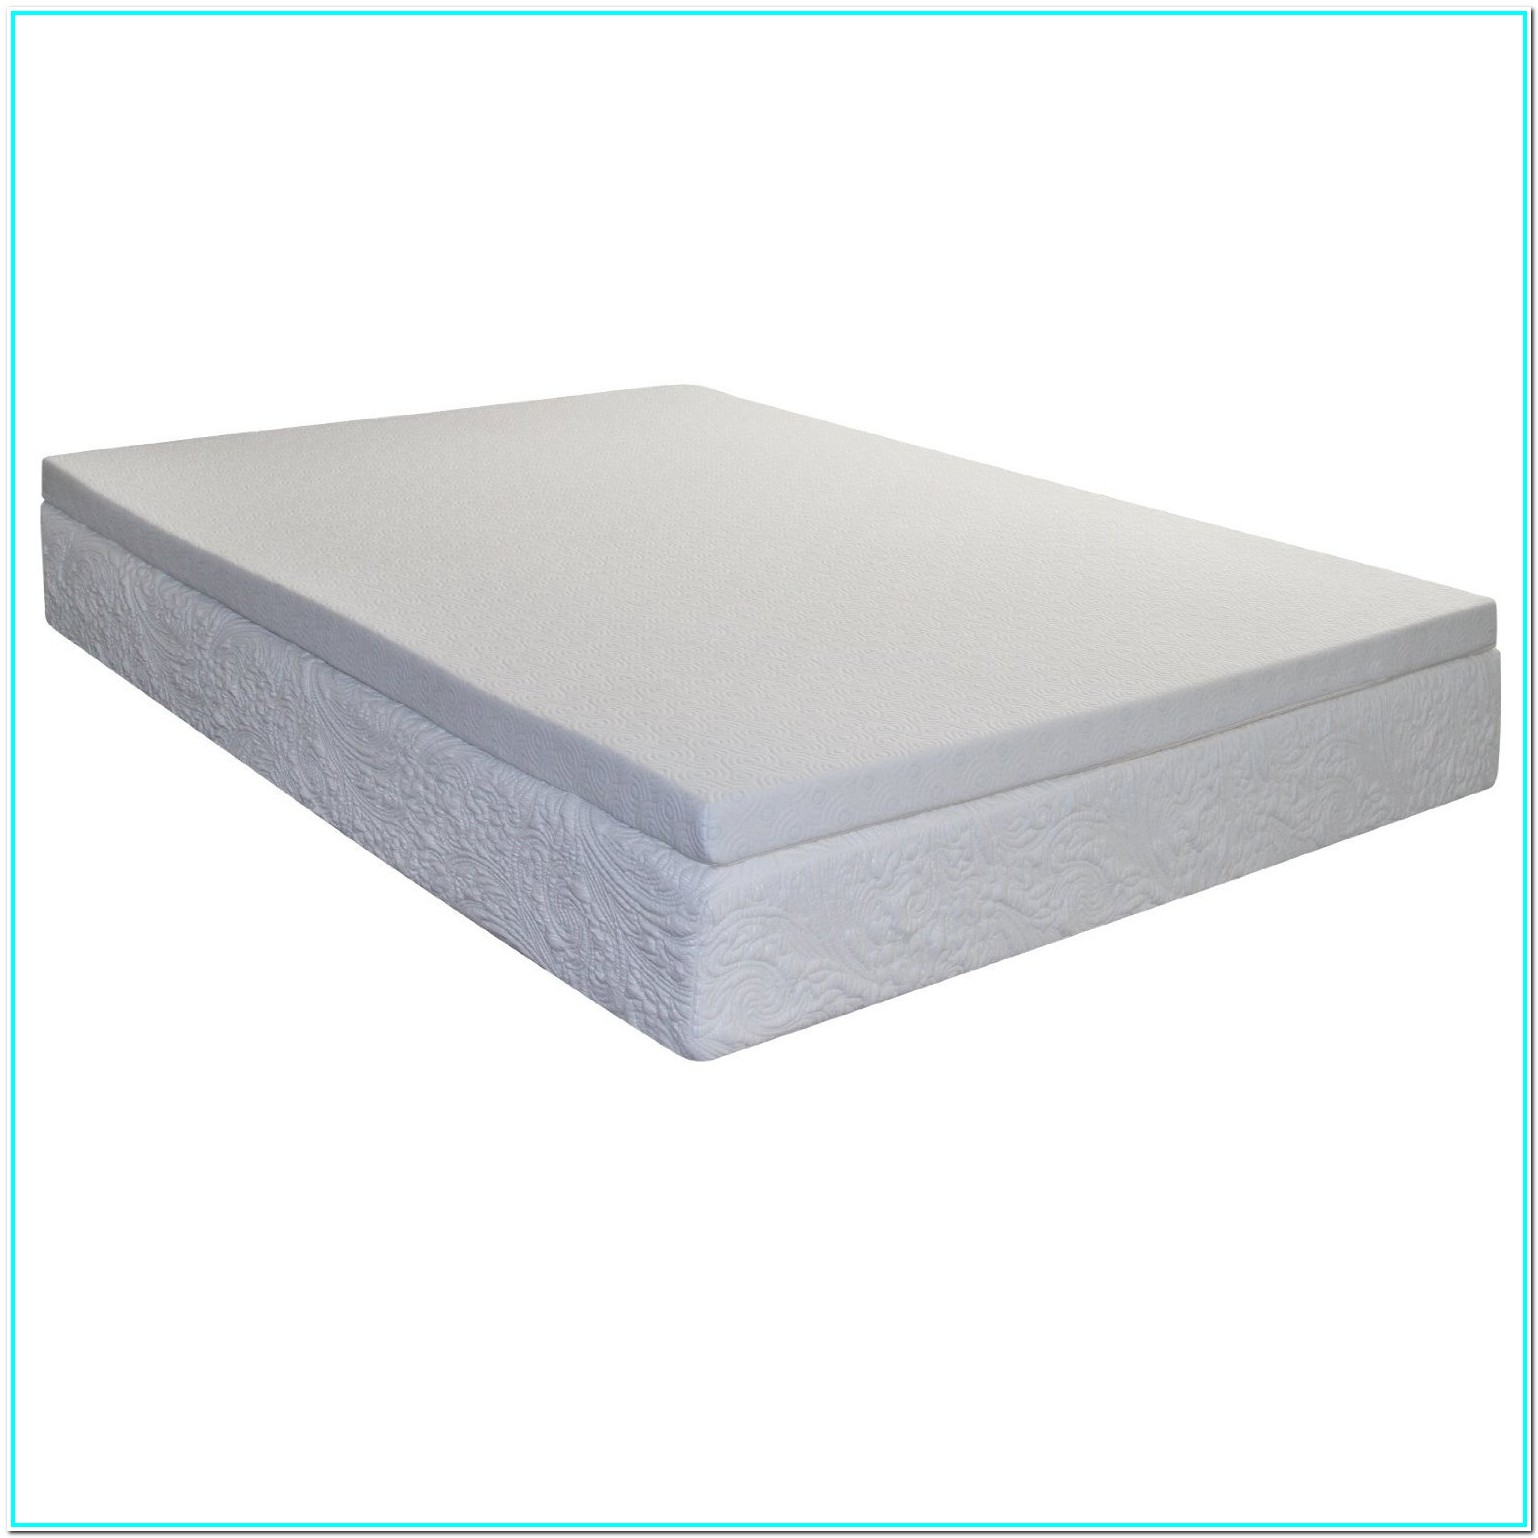 Queen Size Bed Mattress Topper